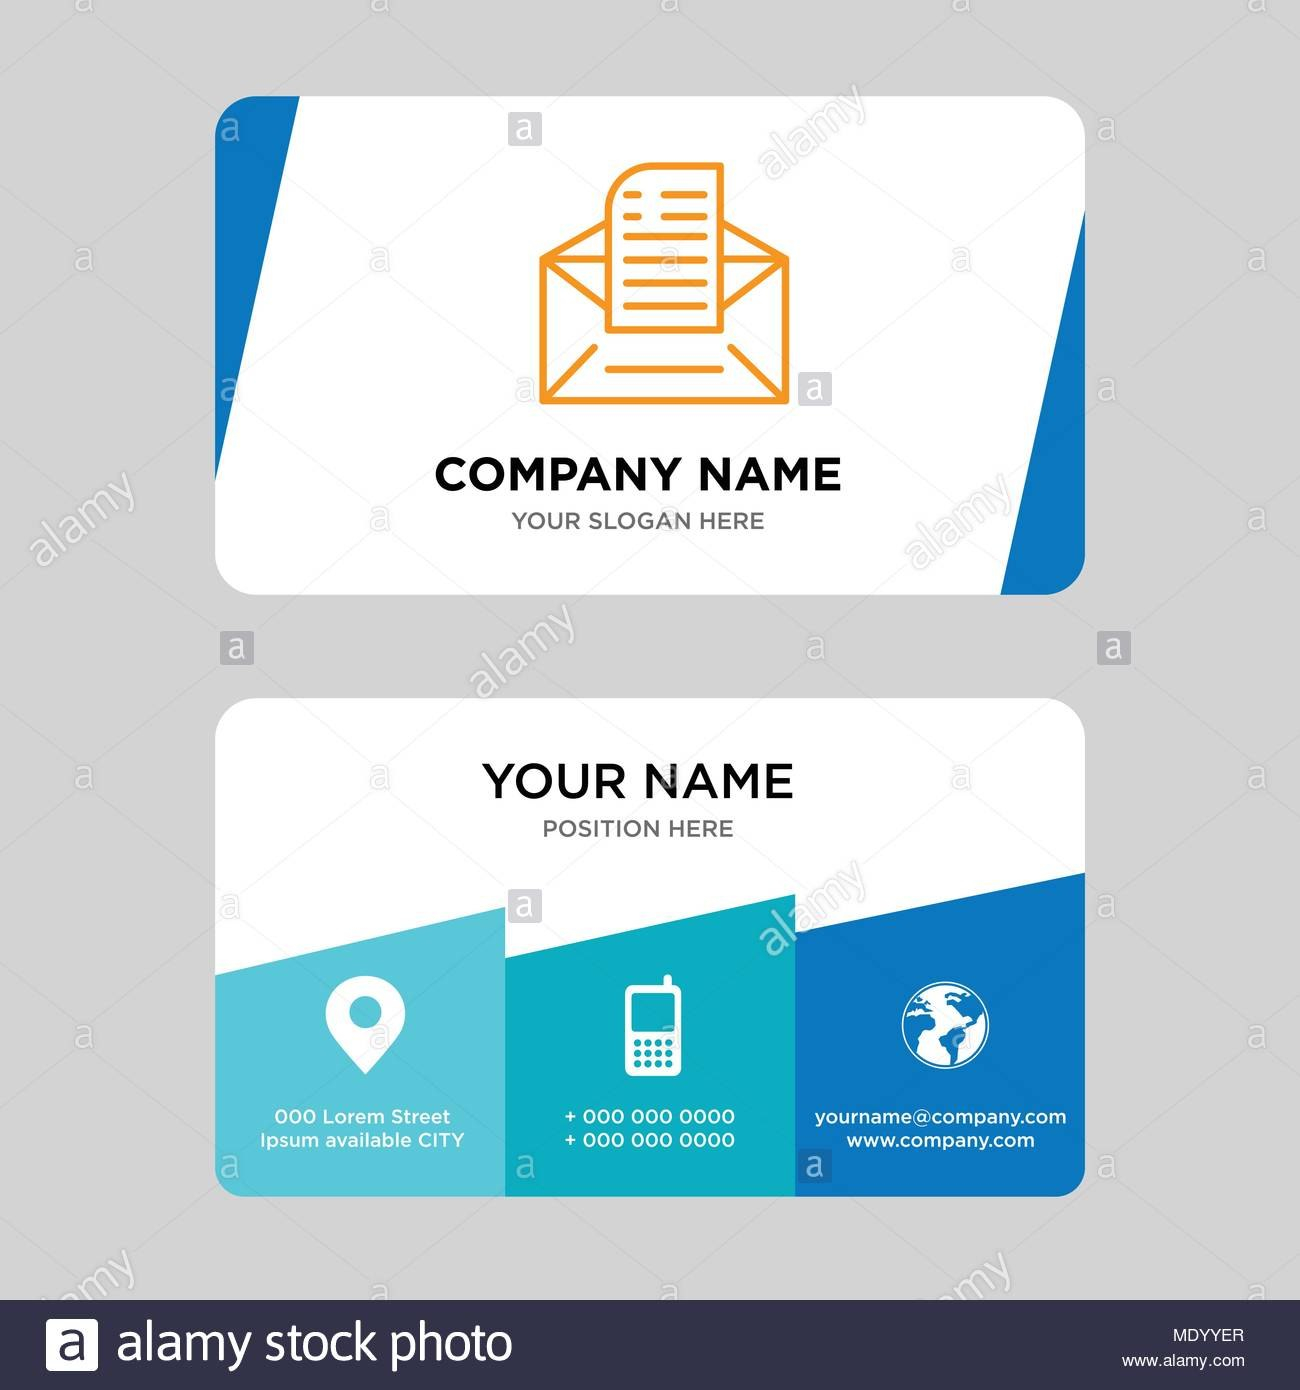 Email Business Card Design Template Visiting For Your Company With Regard To Email Business Card Templates